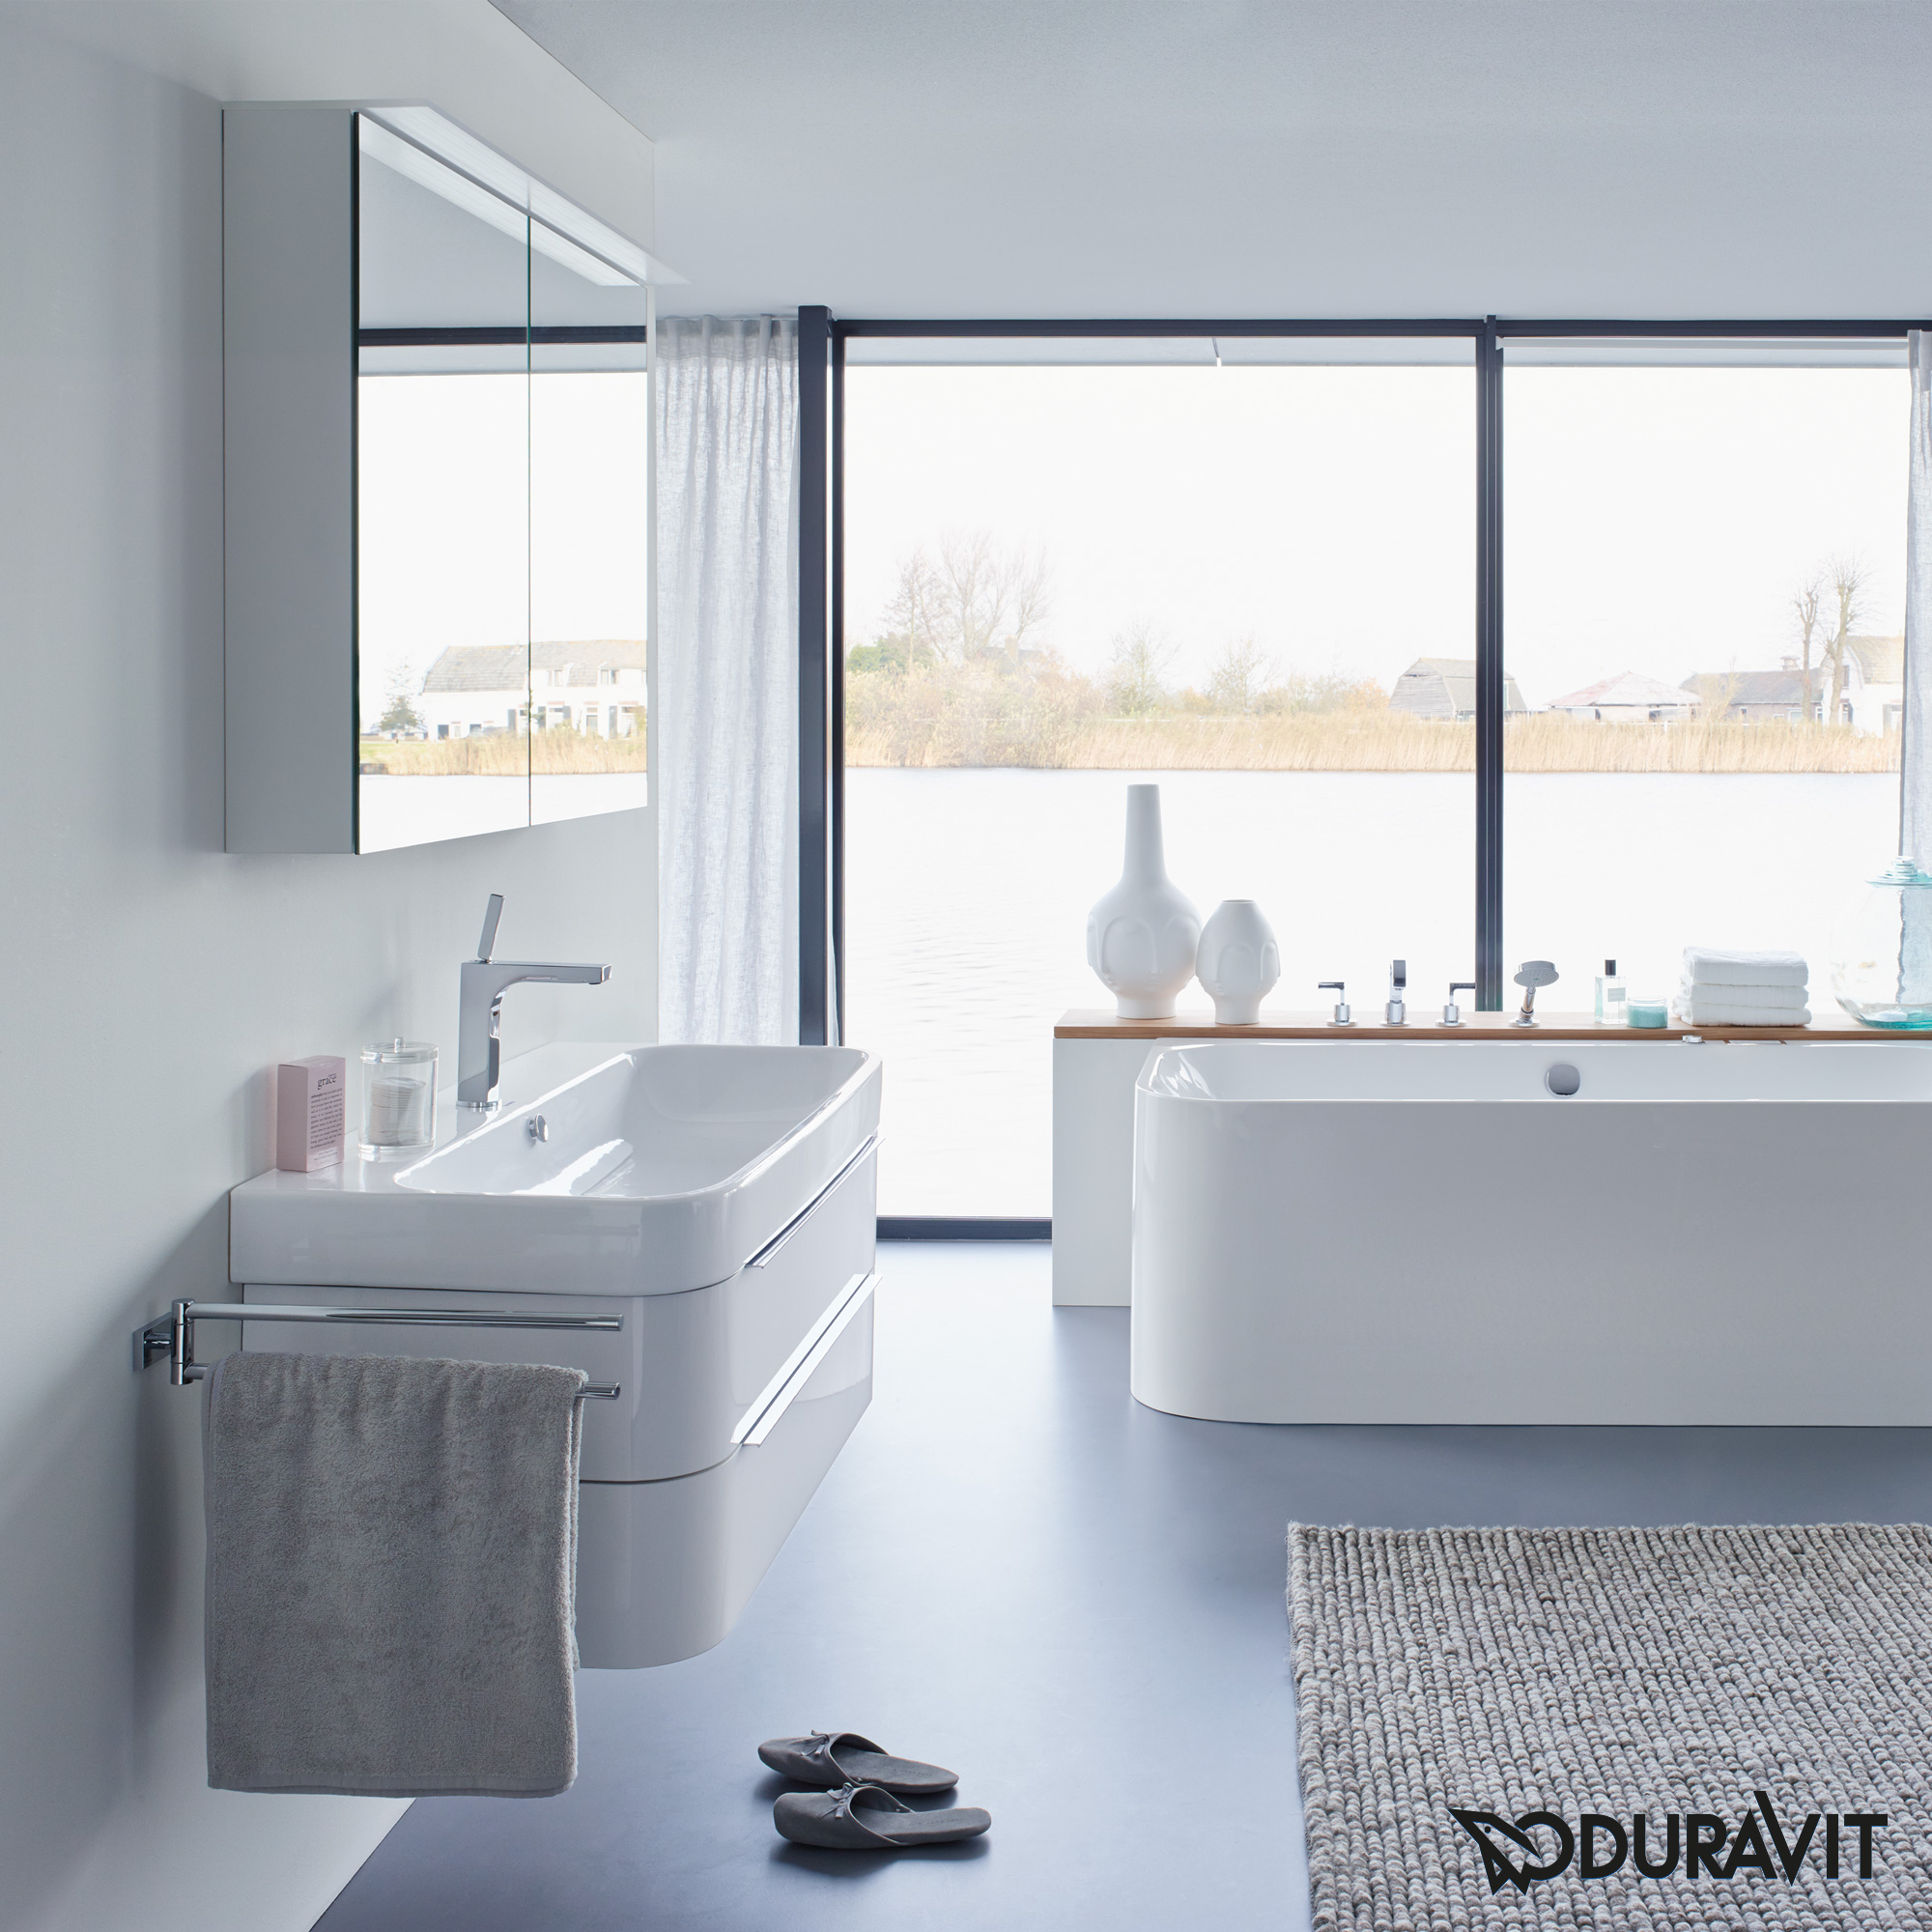 duravit happy d 2 waschtischunterbau wandh ngend t 48 cm wei. Black Bedroom Furniture Sets. Home Design Ideas